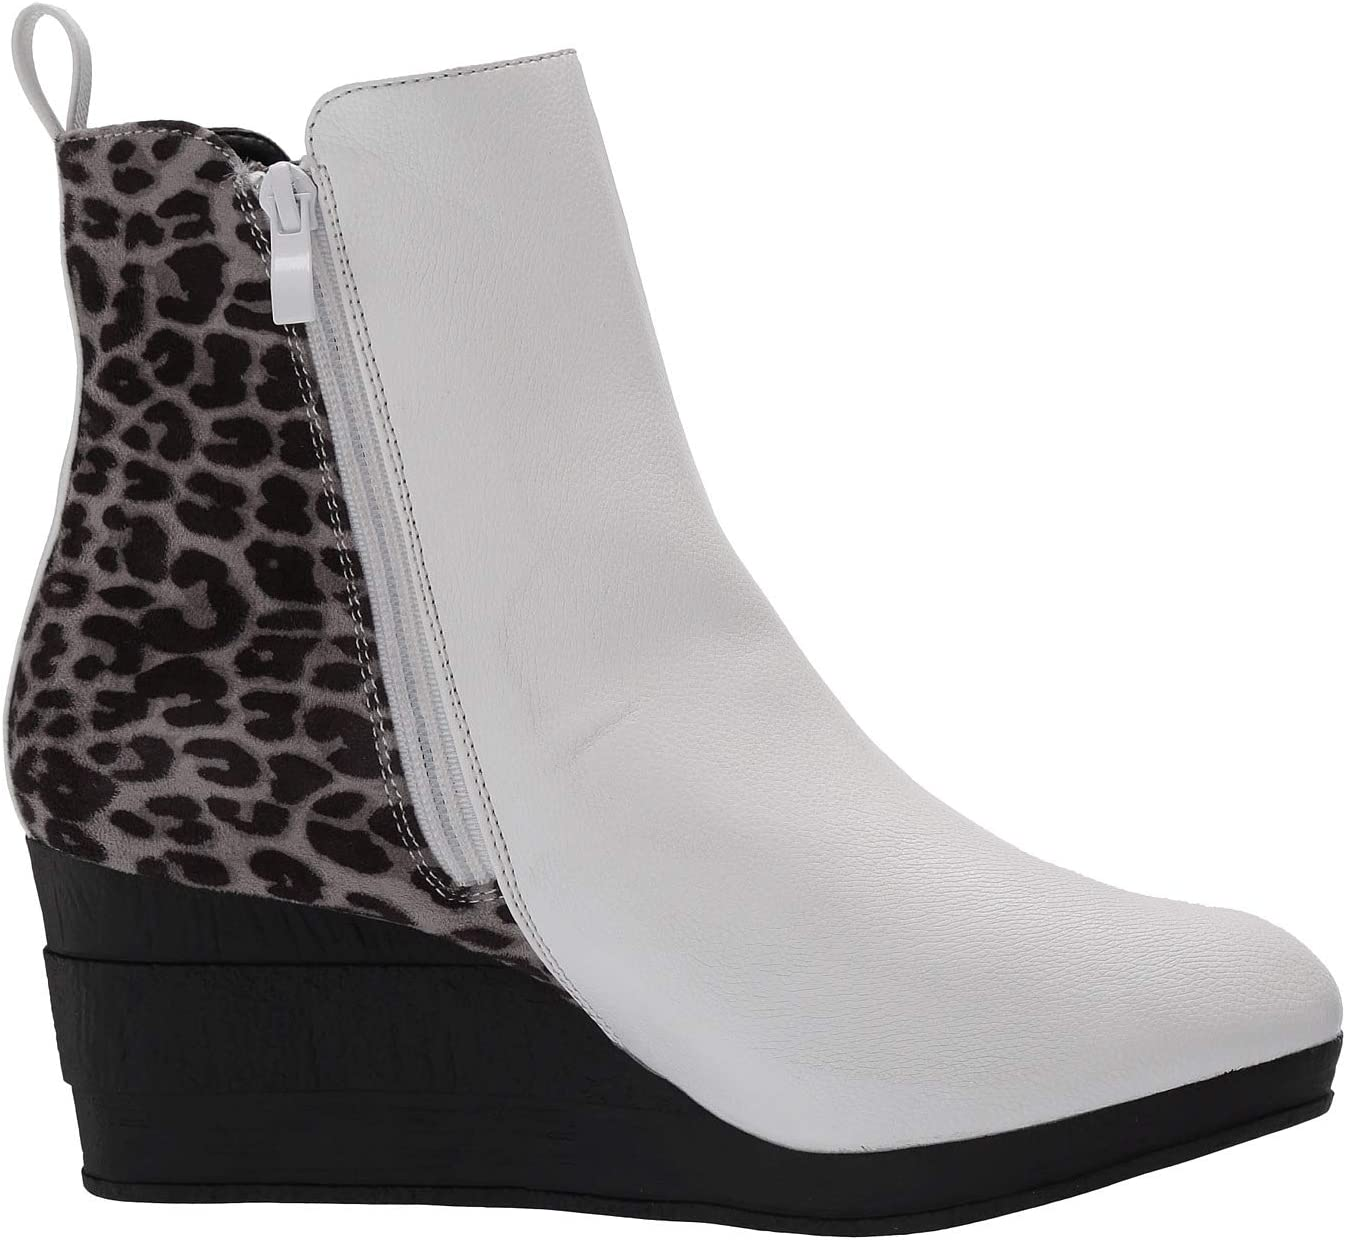 Sbicca Hegan | Women's shoes | 2020 Newest